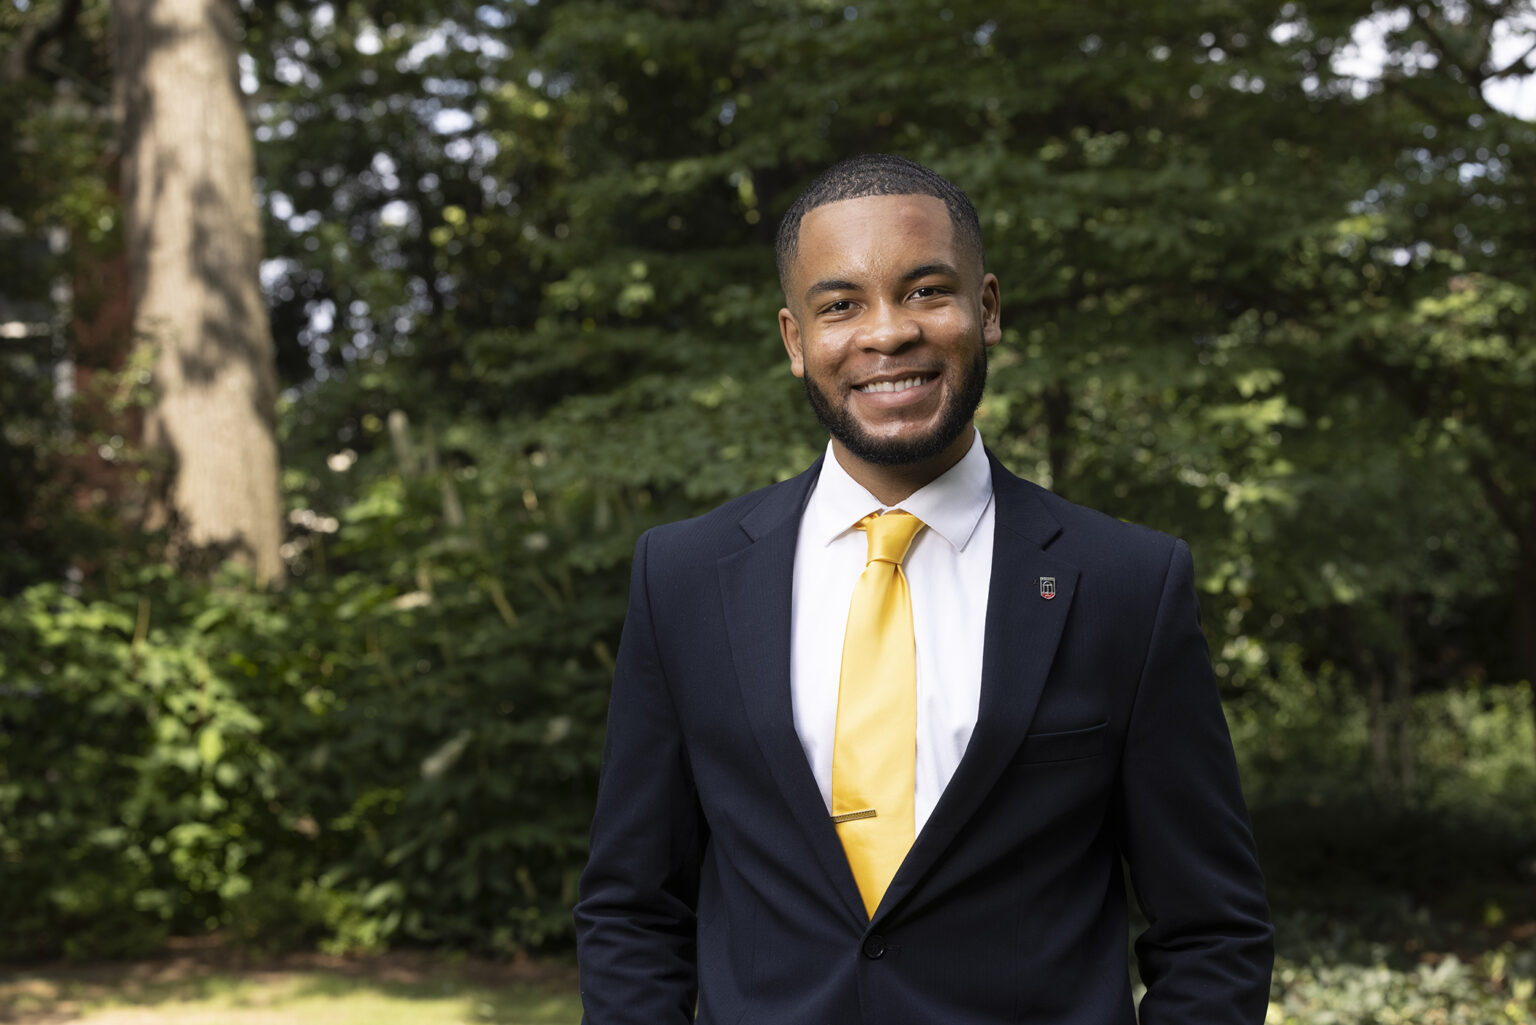 Eric Okanume, a Black student, smiles on campus in a dark suit with yellow tie and UGA pin.